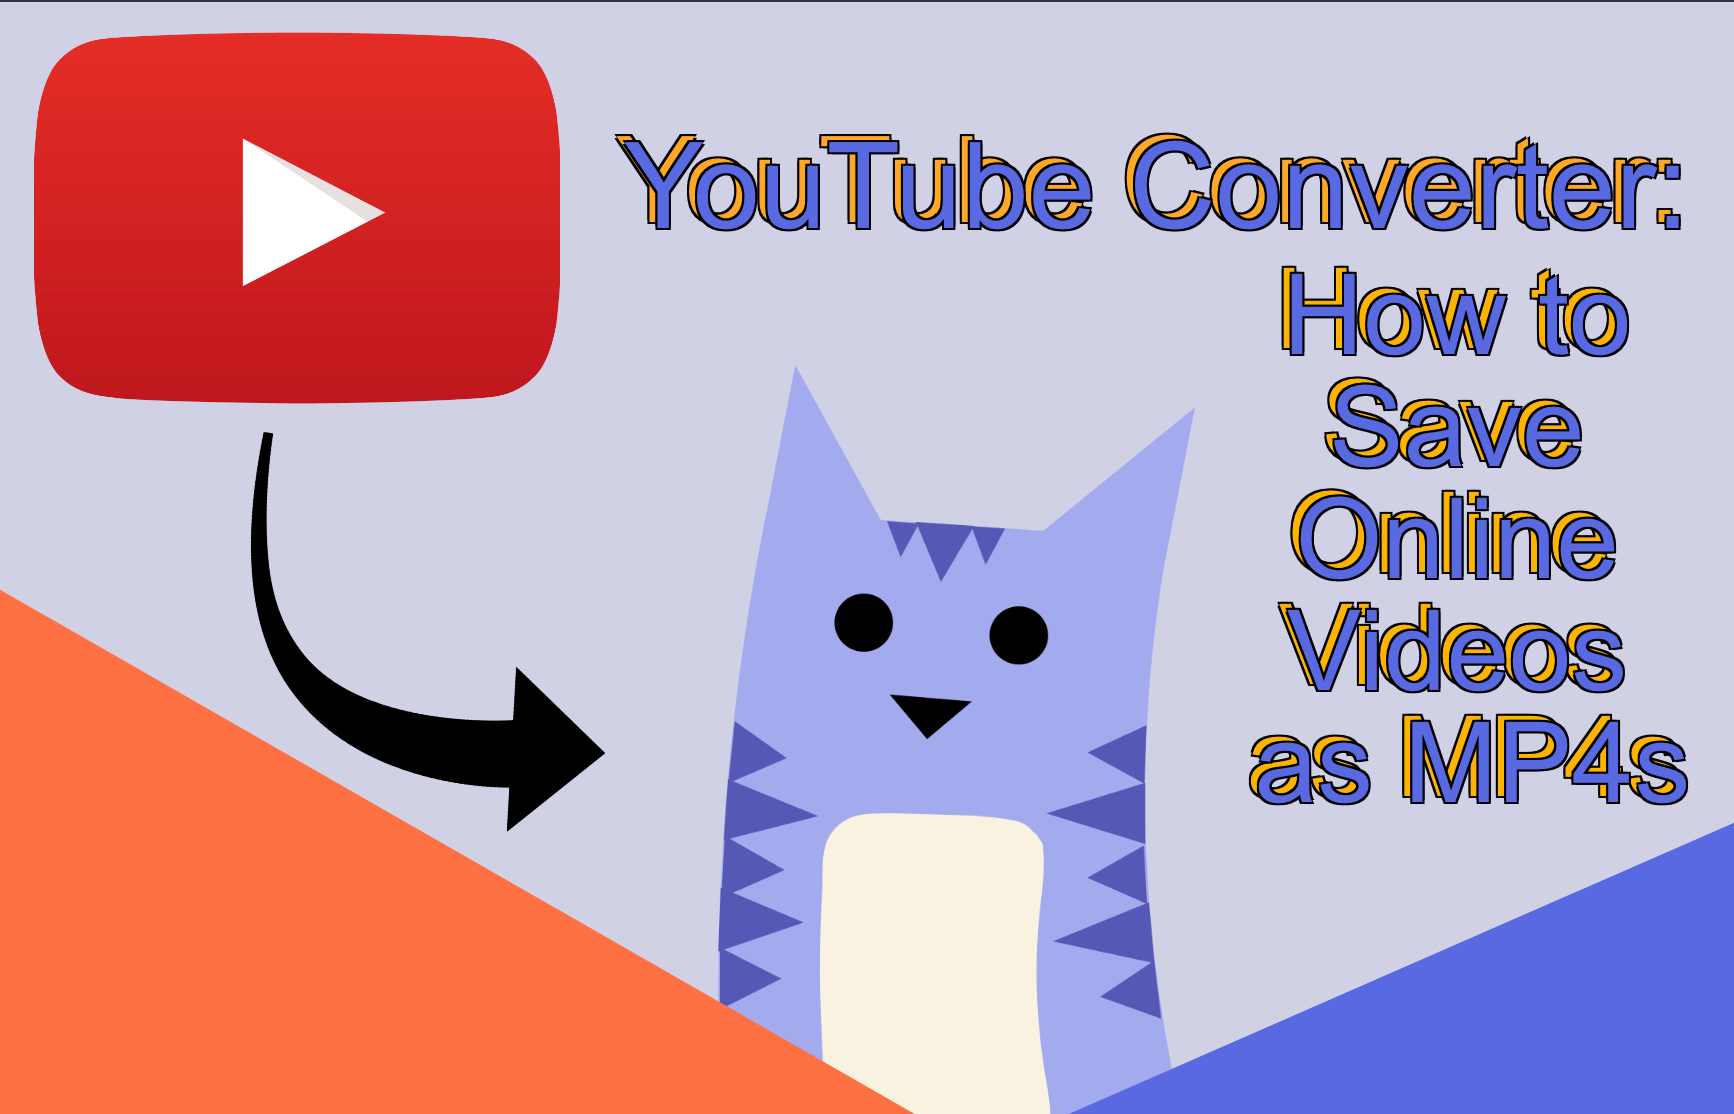 YouTube Converter: How to Save Online Videos as MP4s